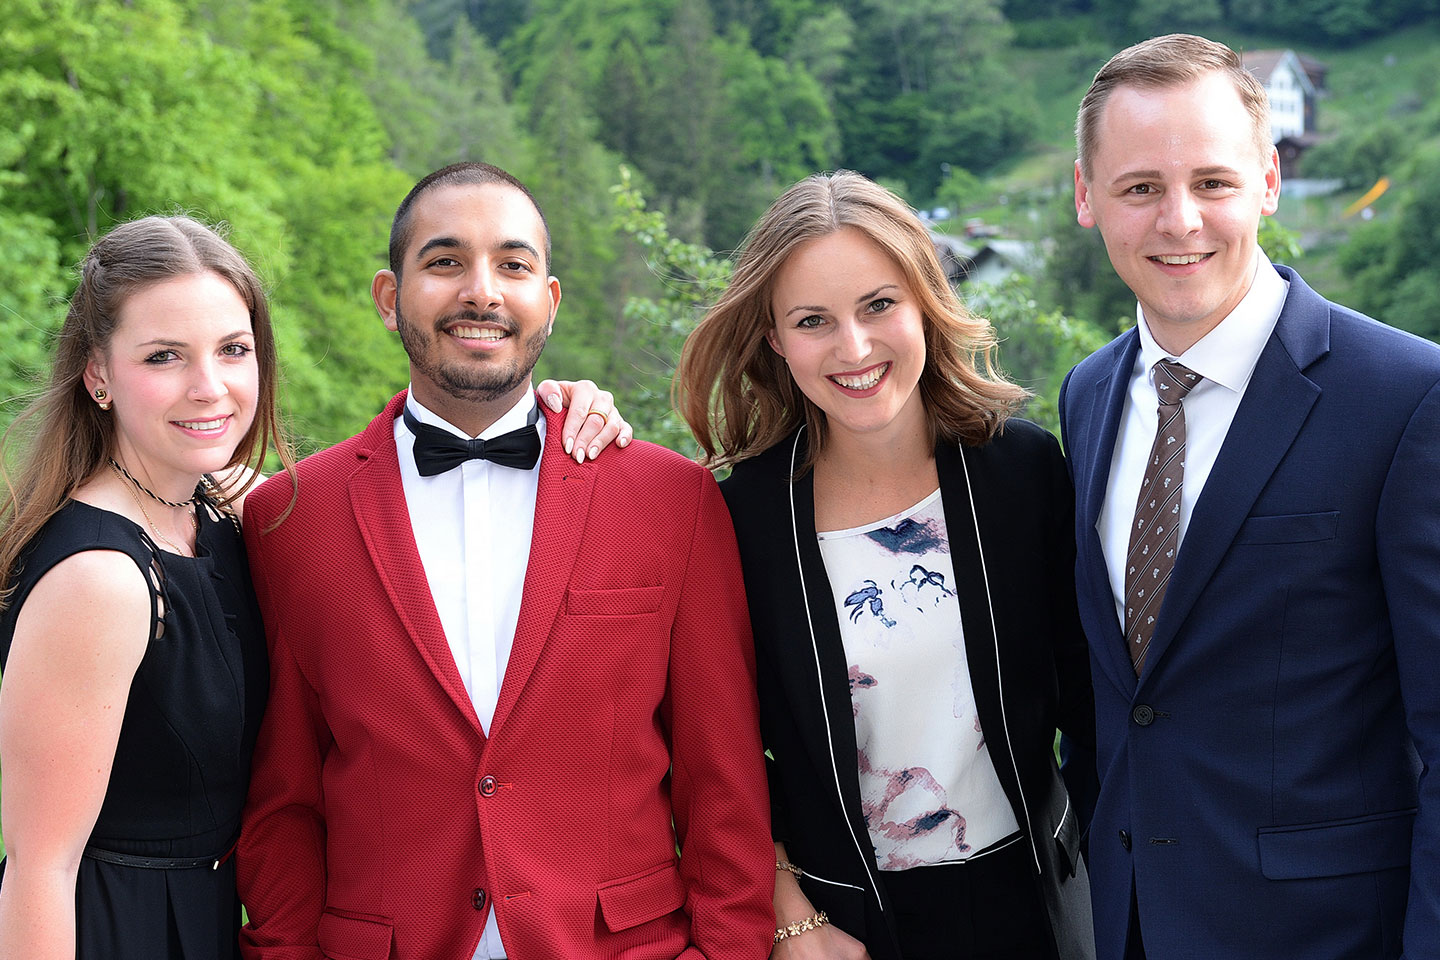 Alumni at EHL Campus Passugg look back at their hospitality studies in Switzerland